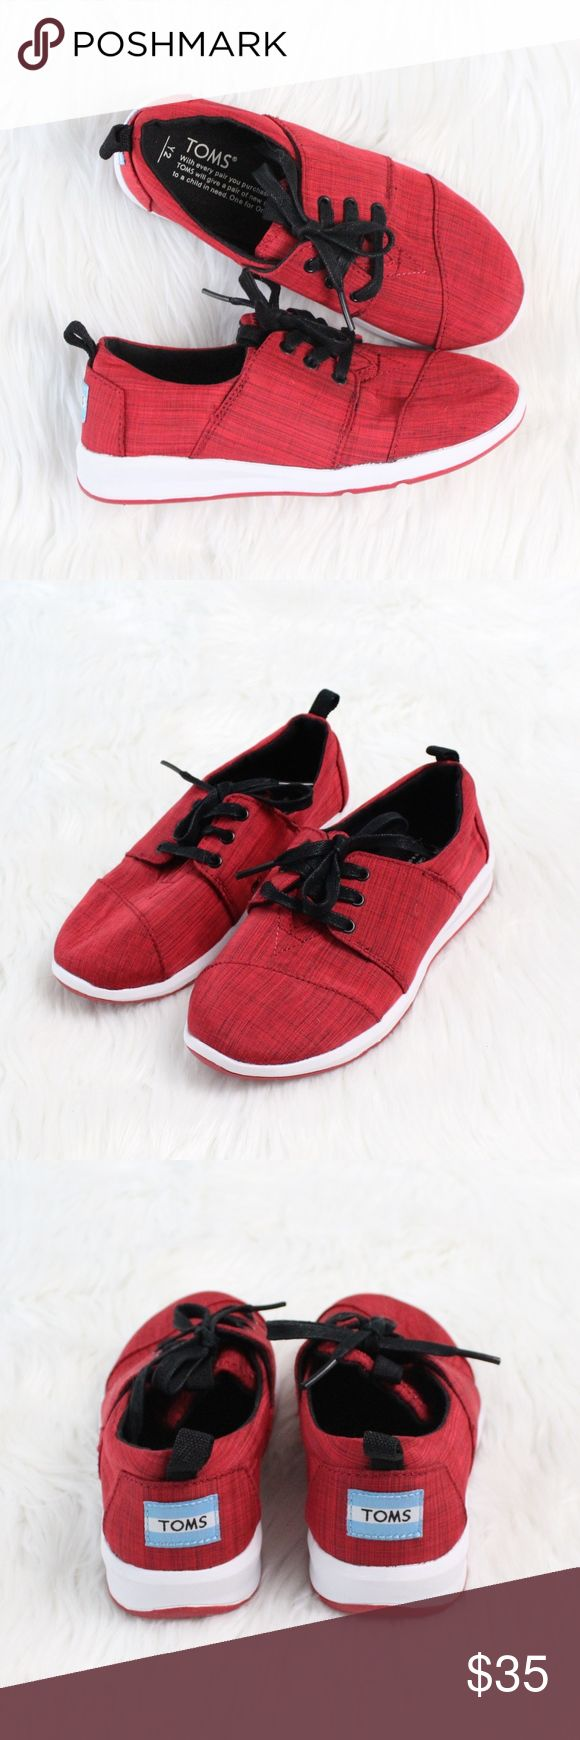 TOMS Del Rey Youth Sneaker in Red/Black Brand new without box!  Size: Y2 Color: Red/Black  Set on a super-lightweight sole, a sporty lace-up sneaker made from breezy canvas is crafted with a signature TOMS flag at the back heel and a stitched toe box.  Lace-up style. Textile upper and lining/textile and rubber sole. Toms Shoes Sneakers